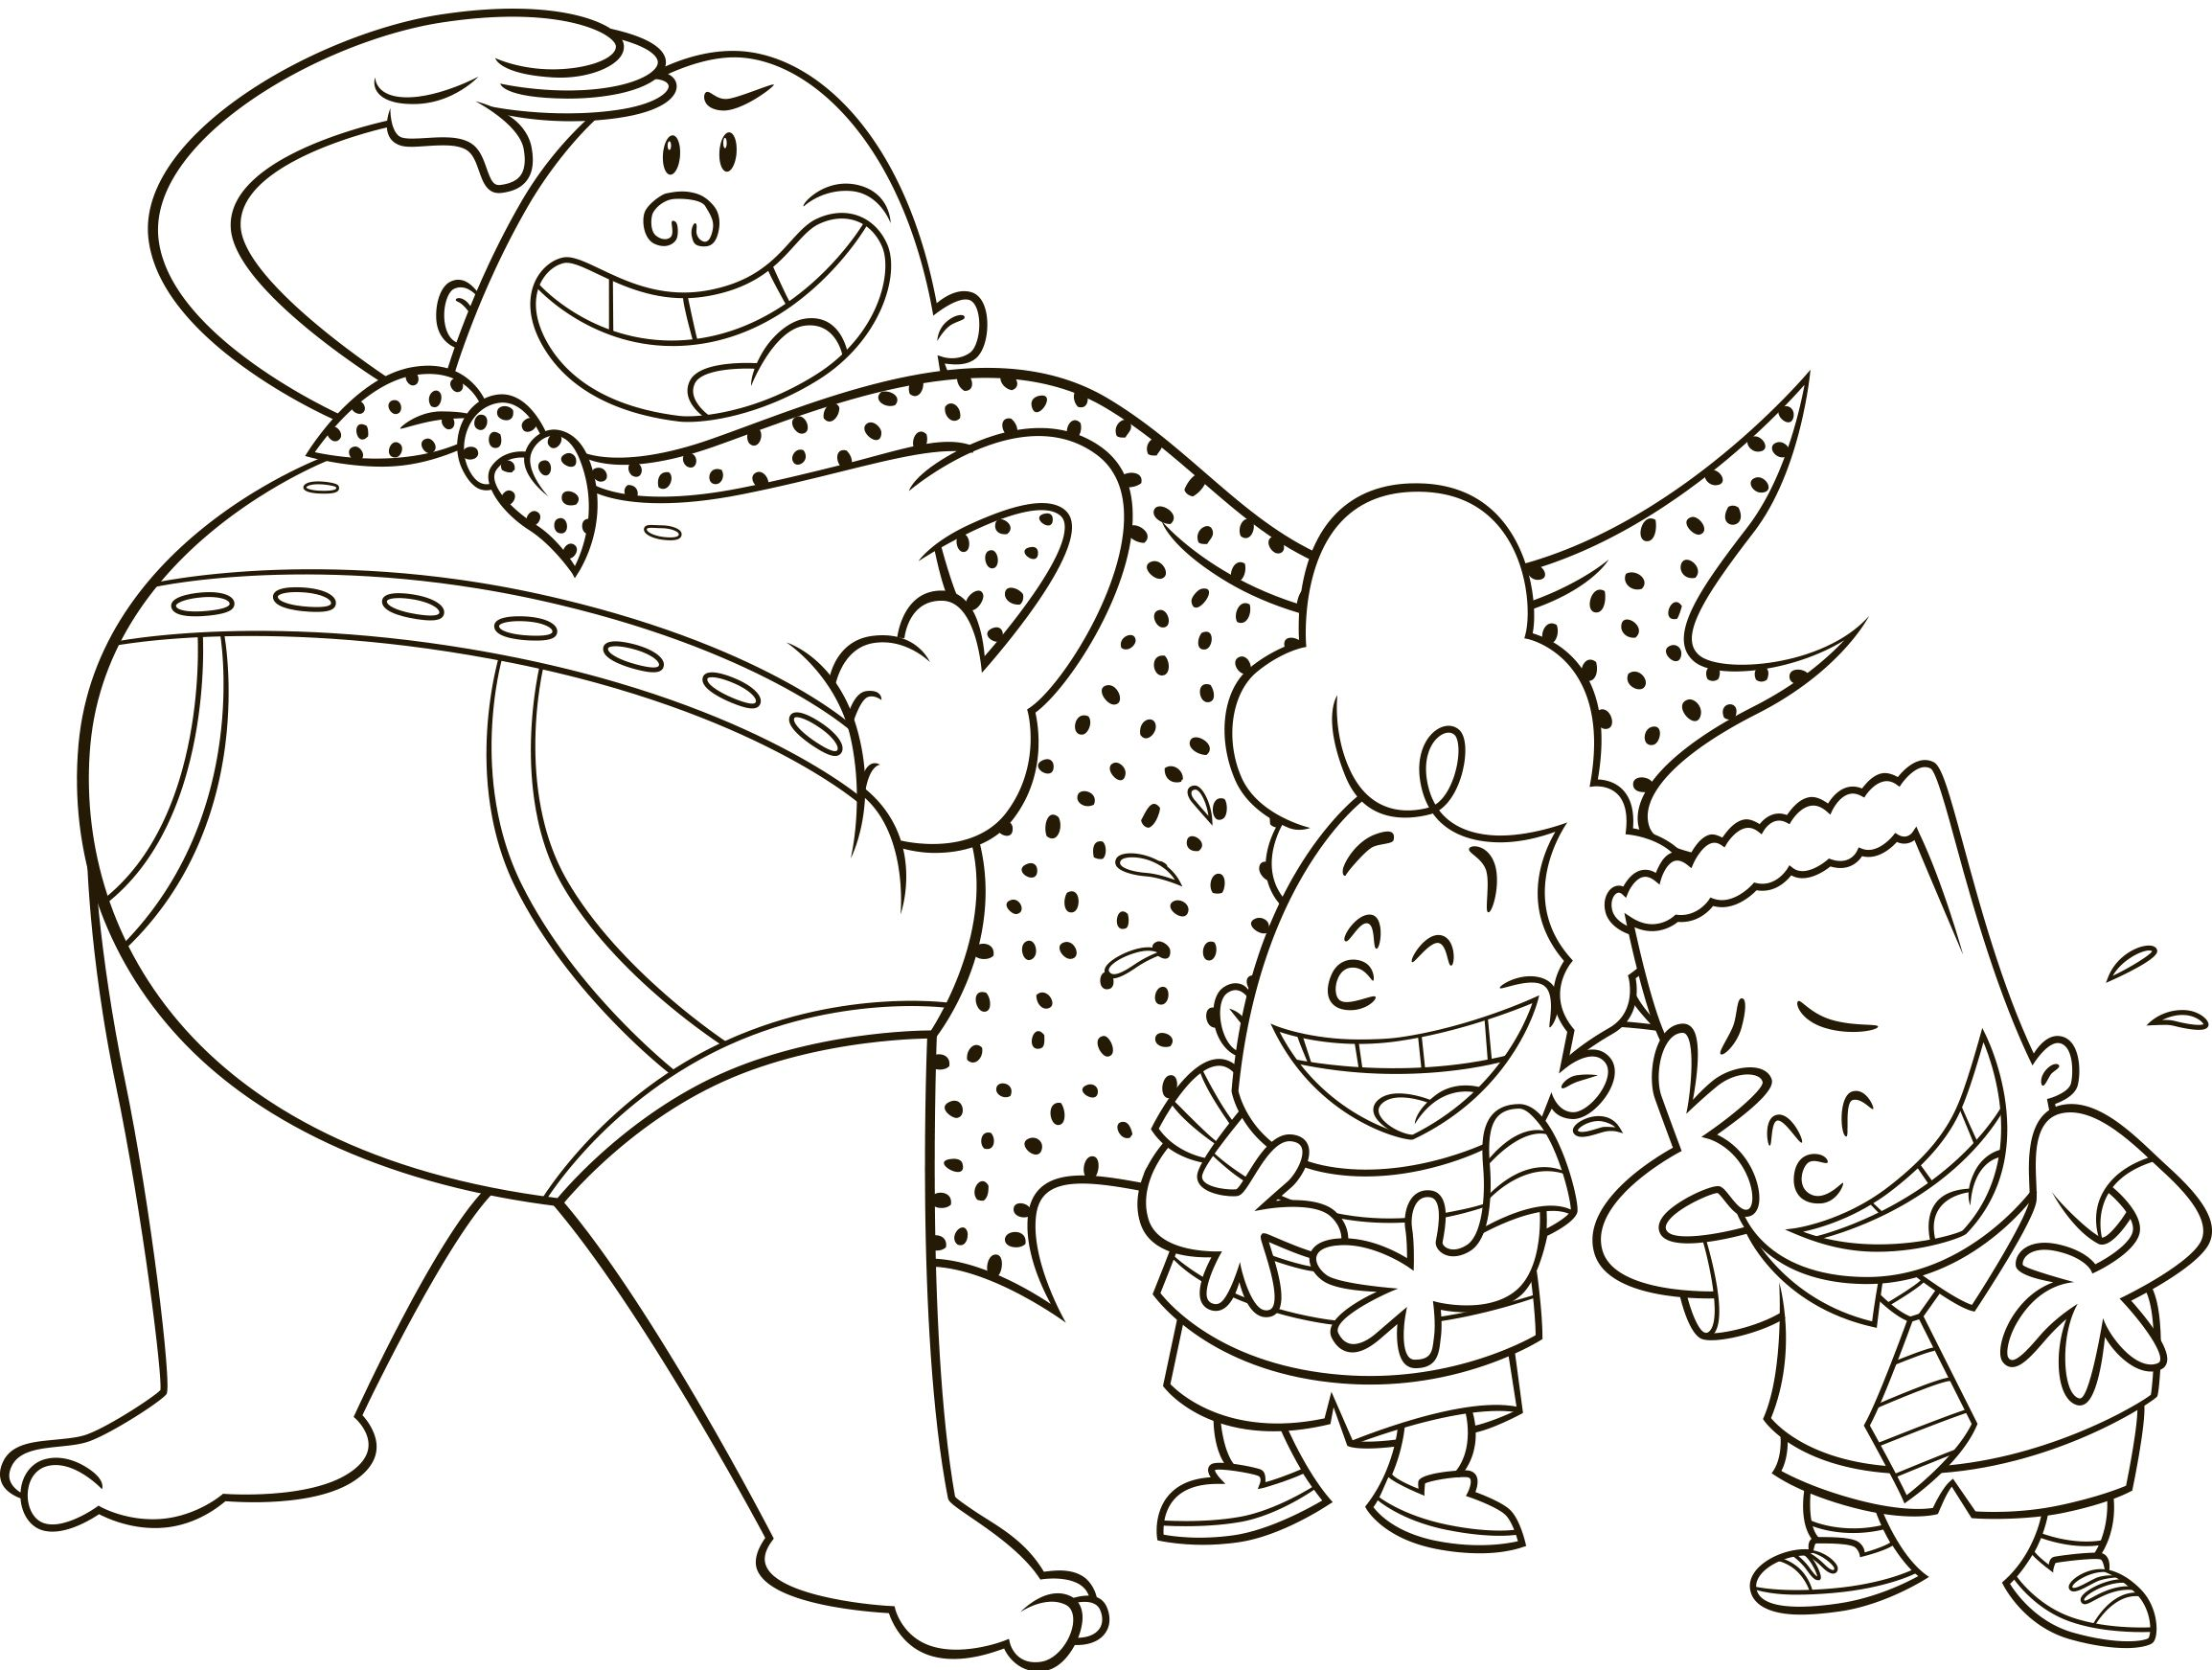 Captain Underpants The First Epic Movie Movie Night Fun The Review Wire Captain Underpants Monster Coloring Pages Coloring Pages